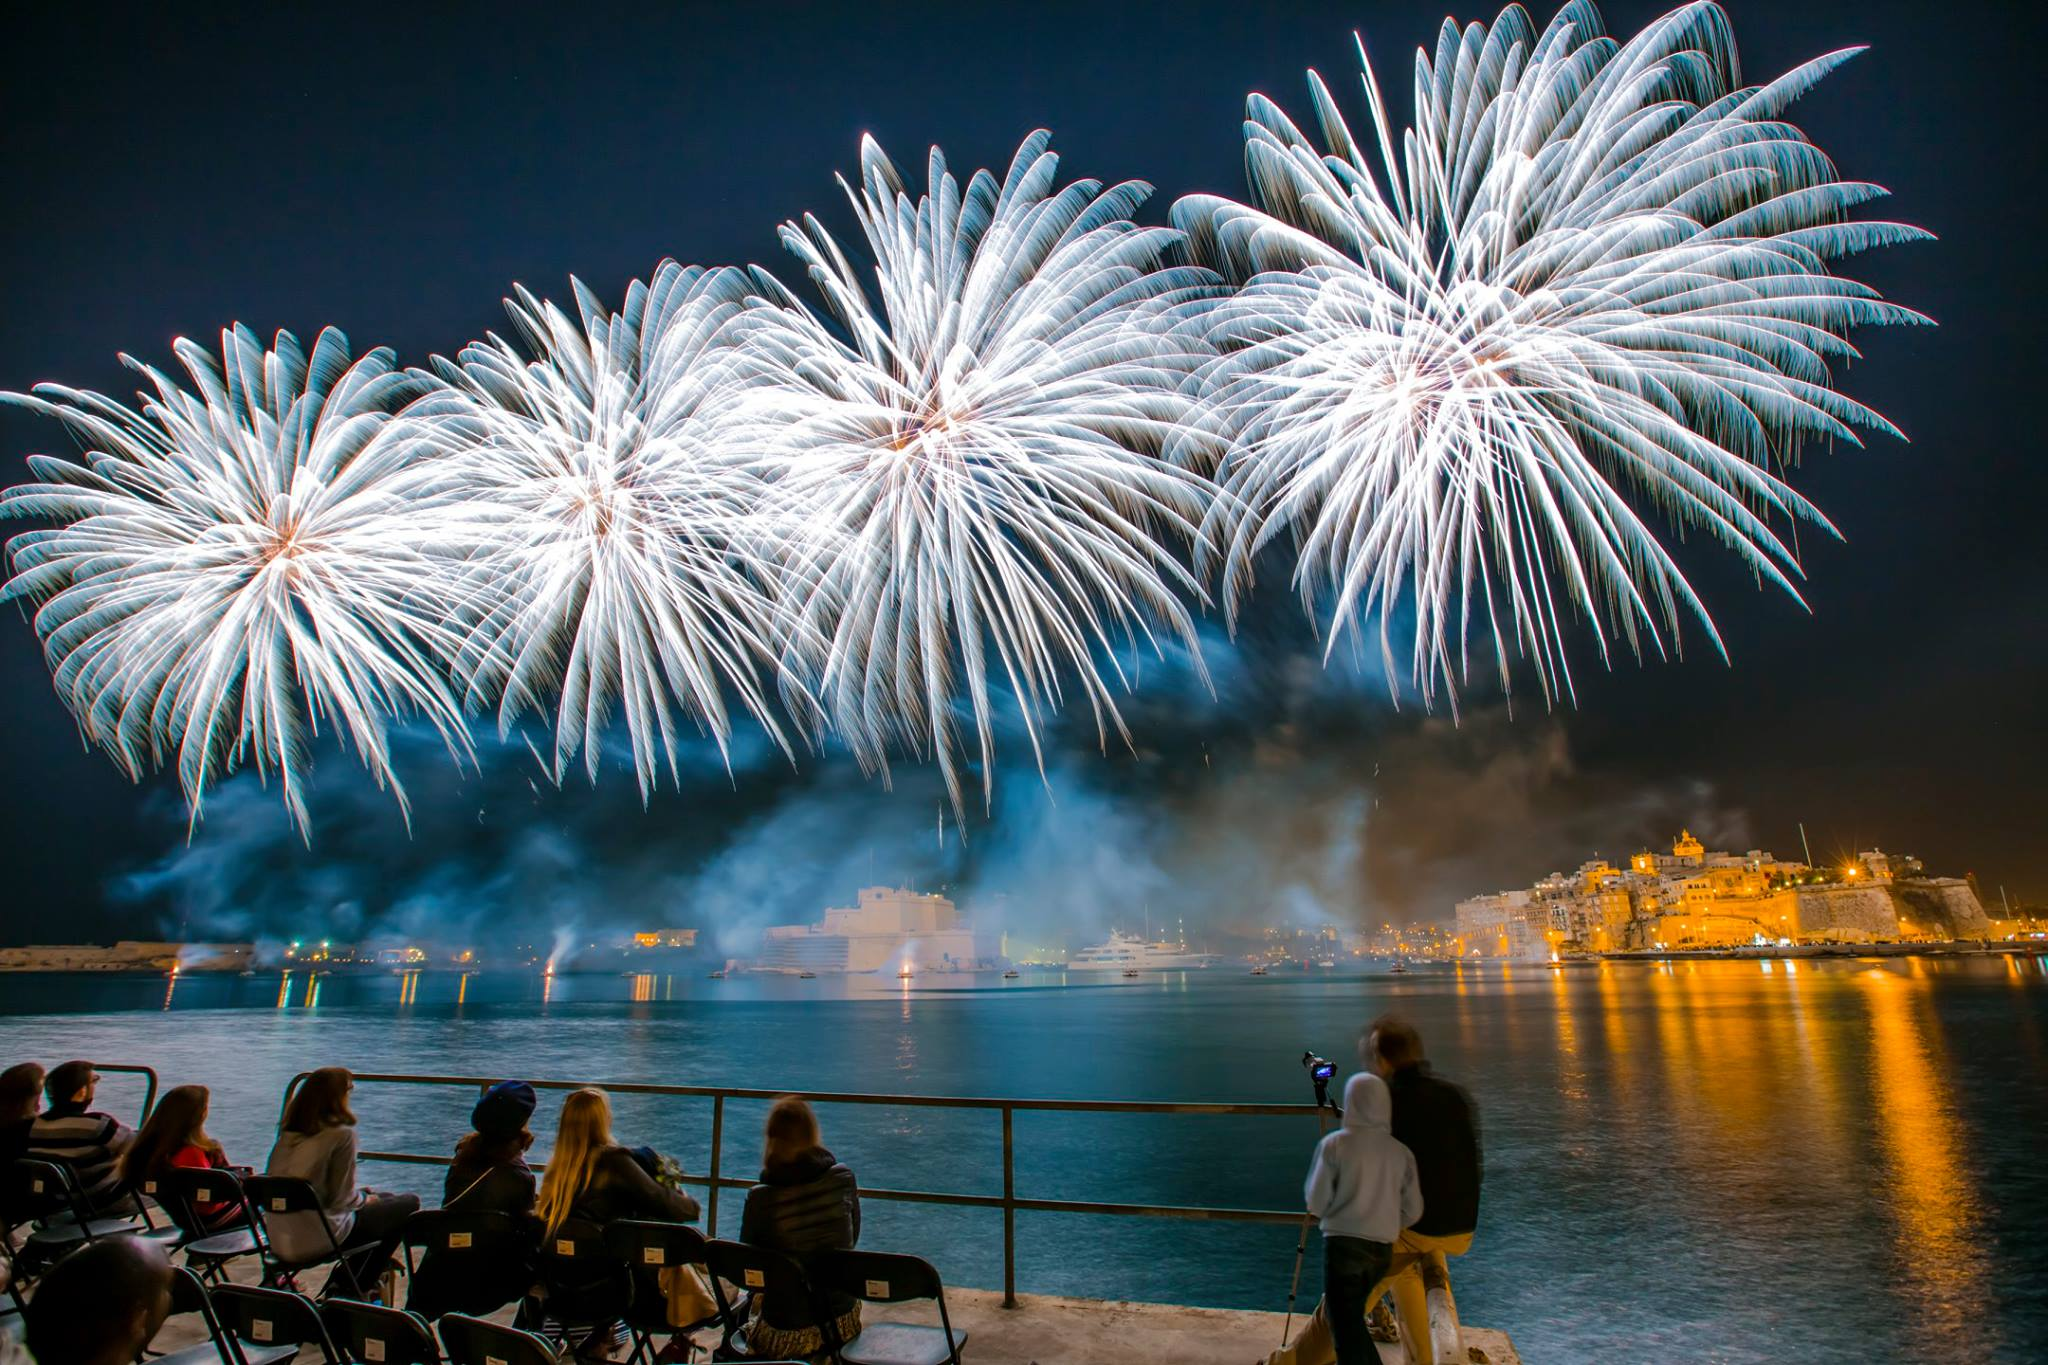 Exclusive viewing of the Fireworks Festival's grand finale at Fort St Angelo